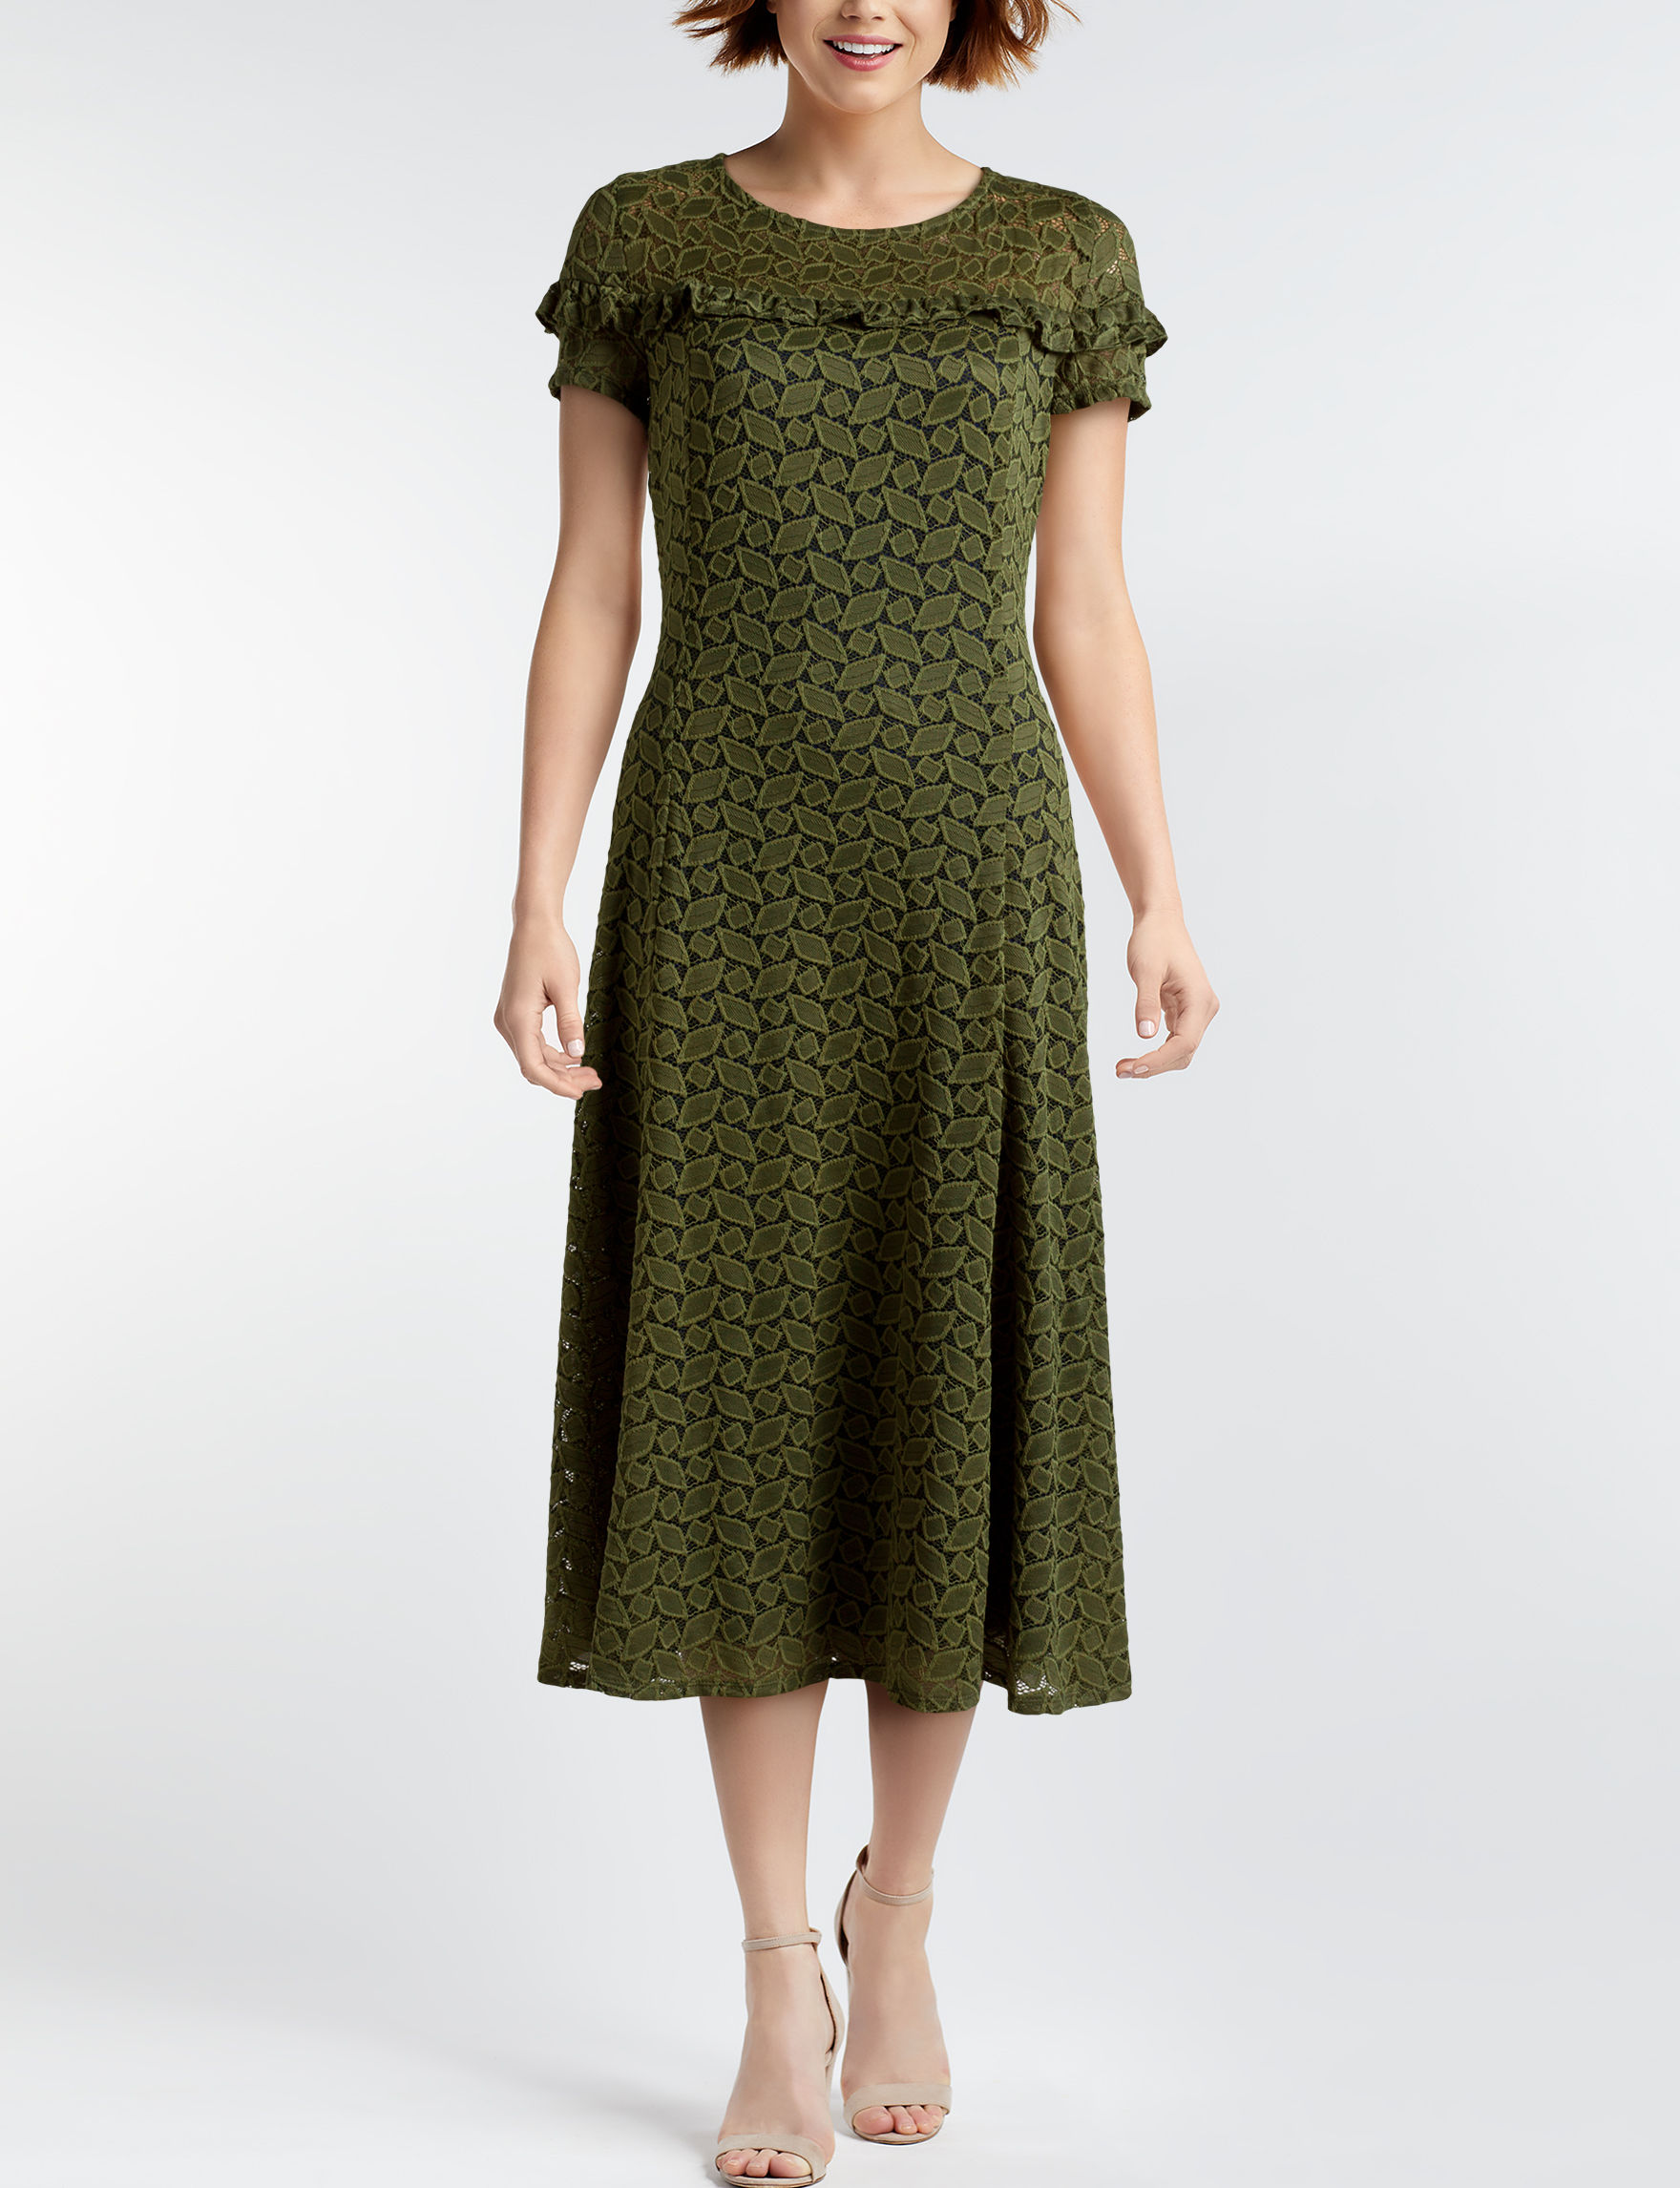 Perceptions Olive Everyday & Casual Fit & Flare Dresses